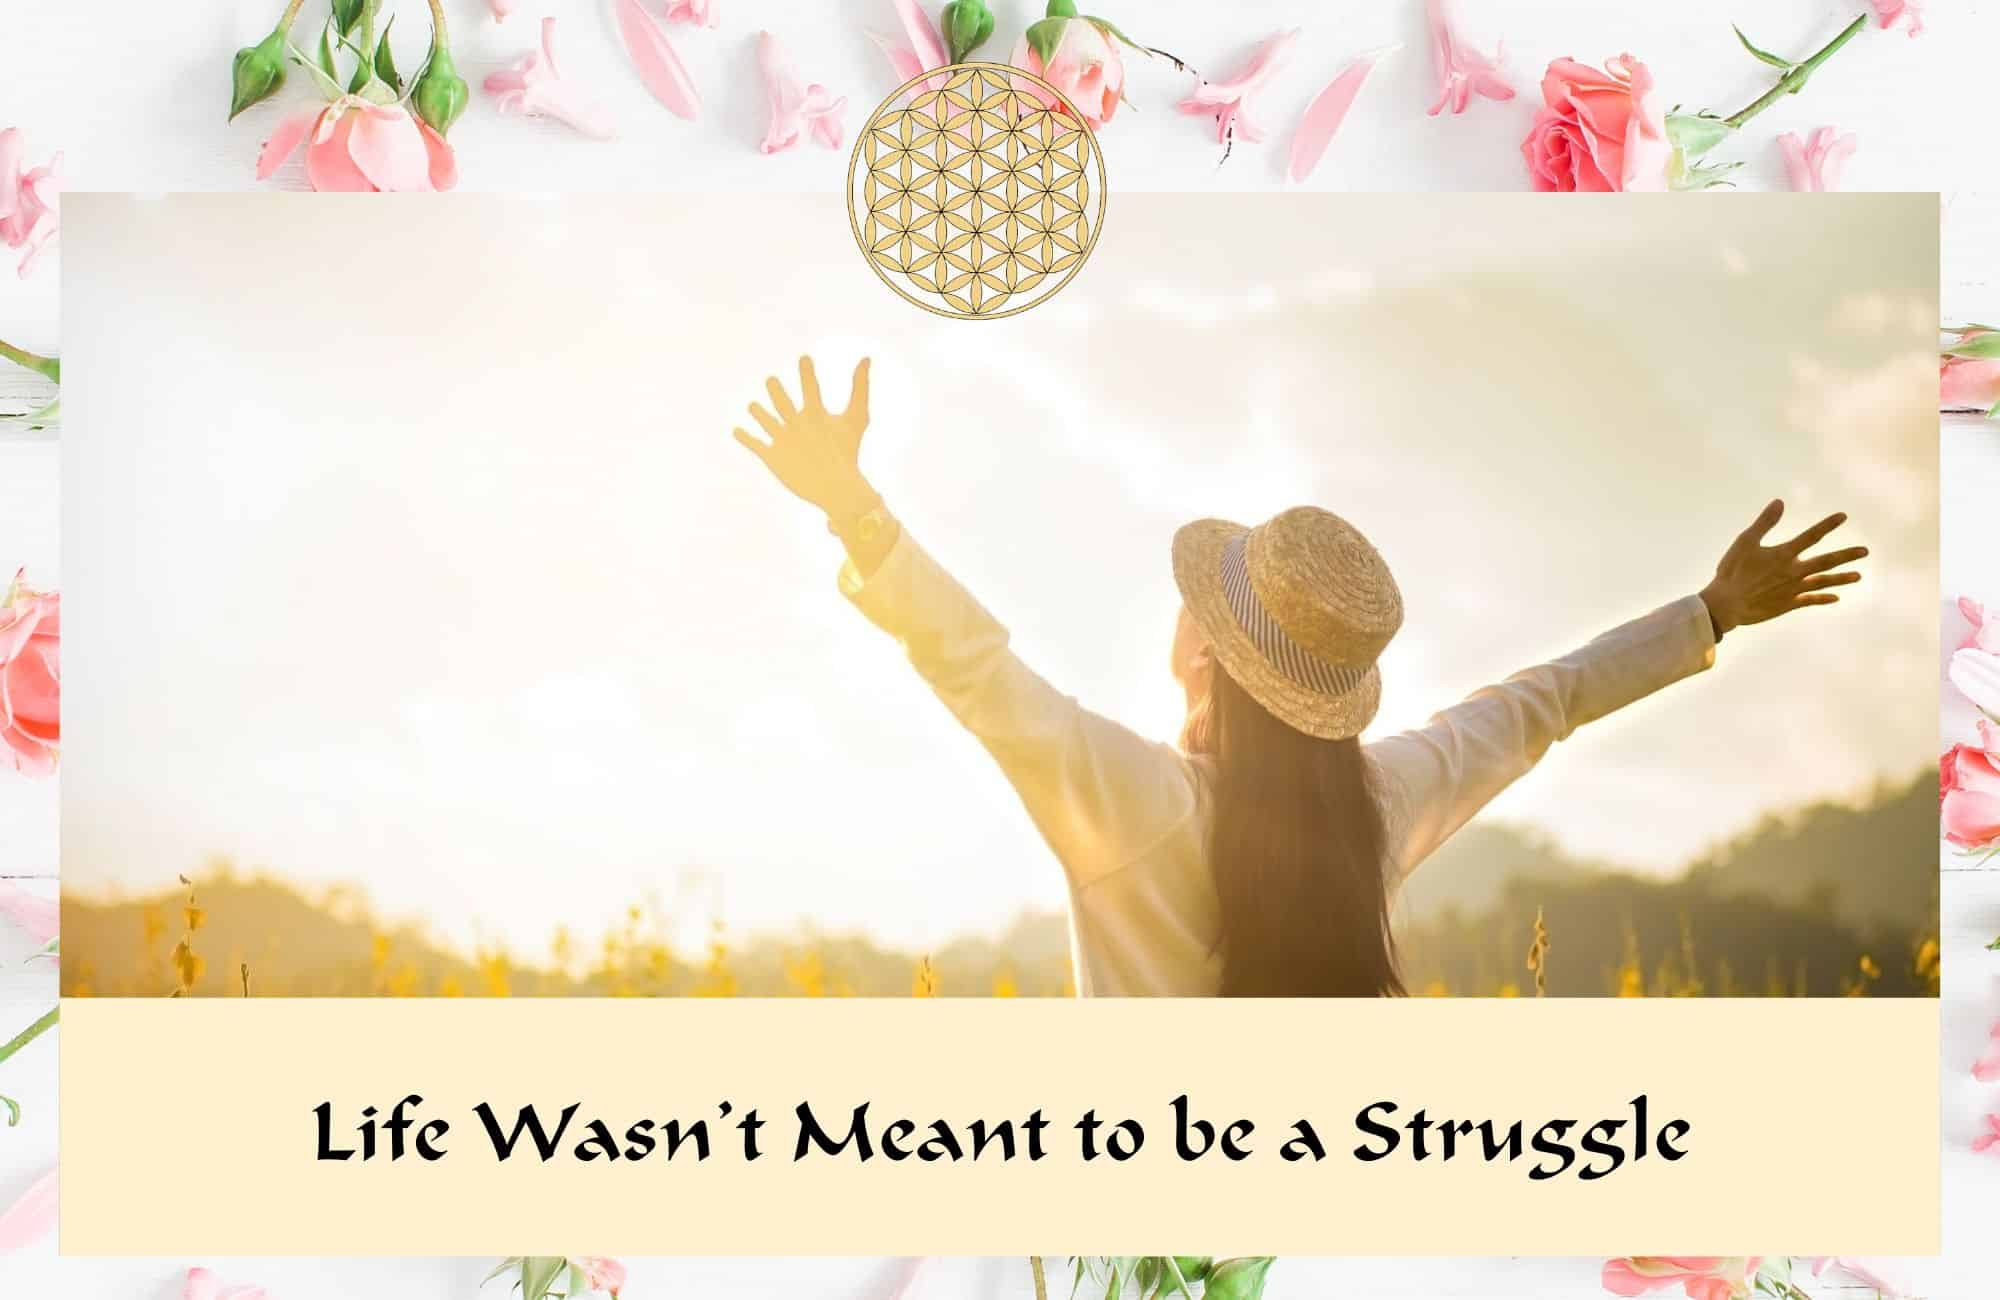 Life wasn't meant to be a struggle - Flower Essences & Remedies - Flowers for Healing